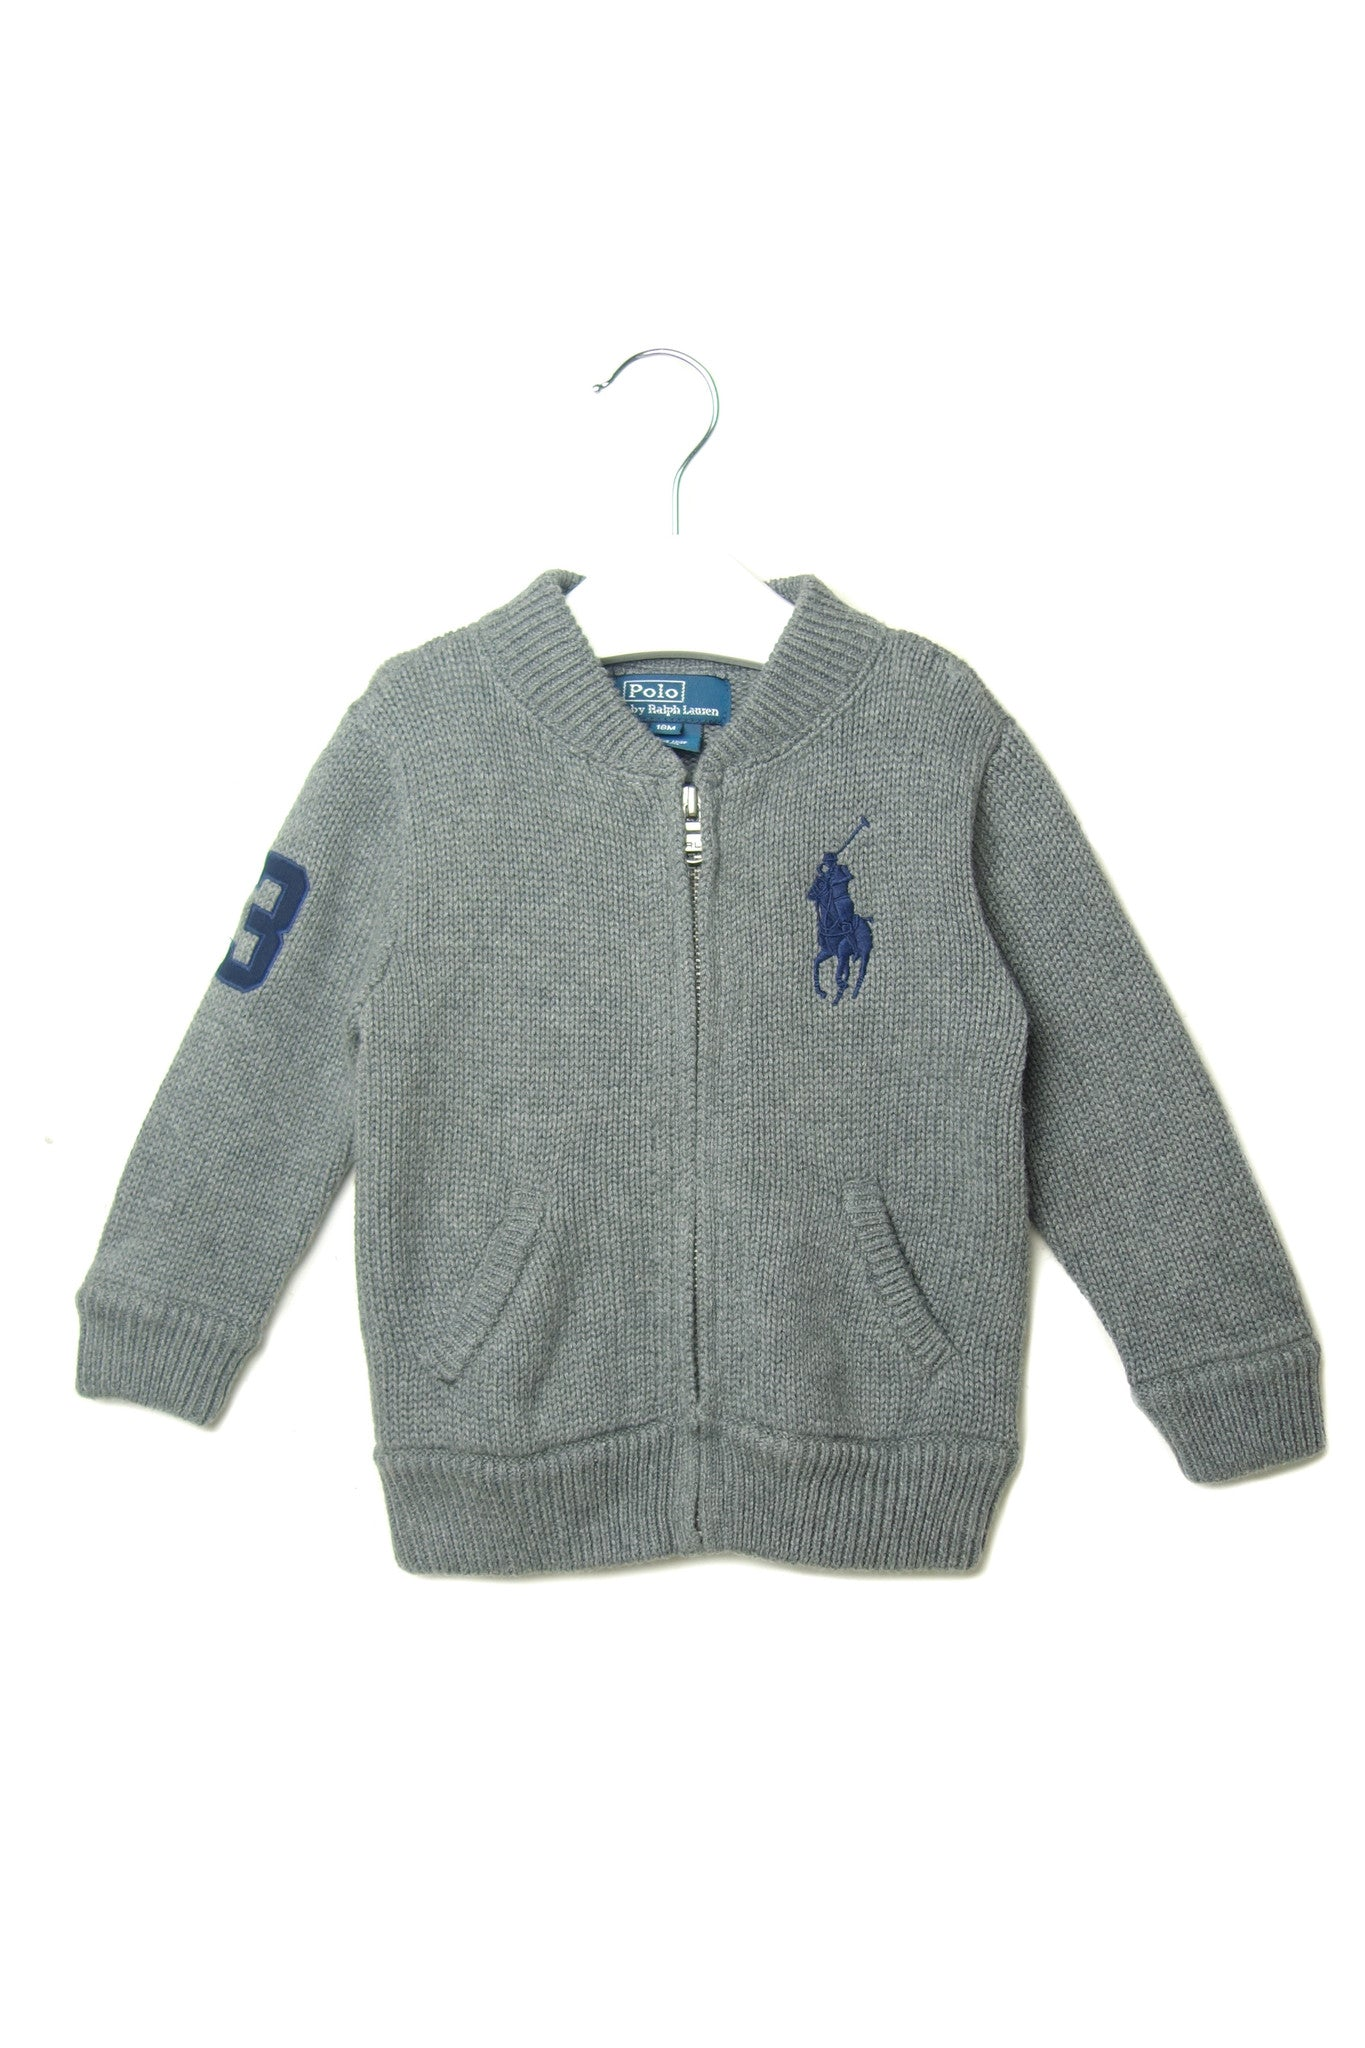 10002103 Polo Ralph Lauren Baby~Sweatshirt 18M at Retykle